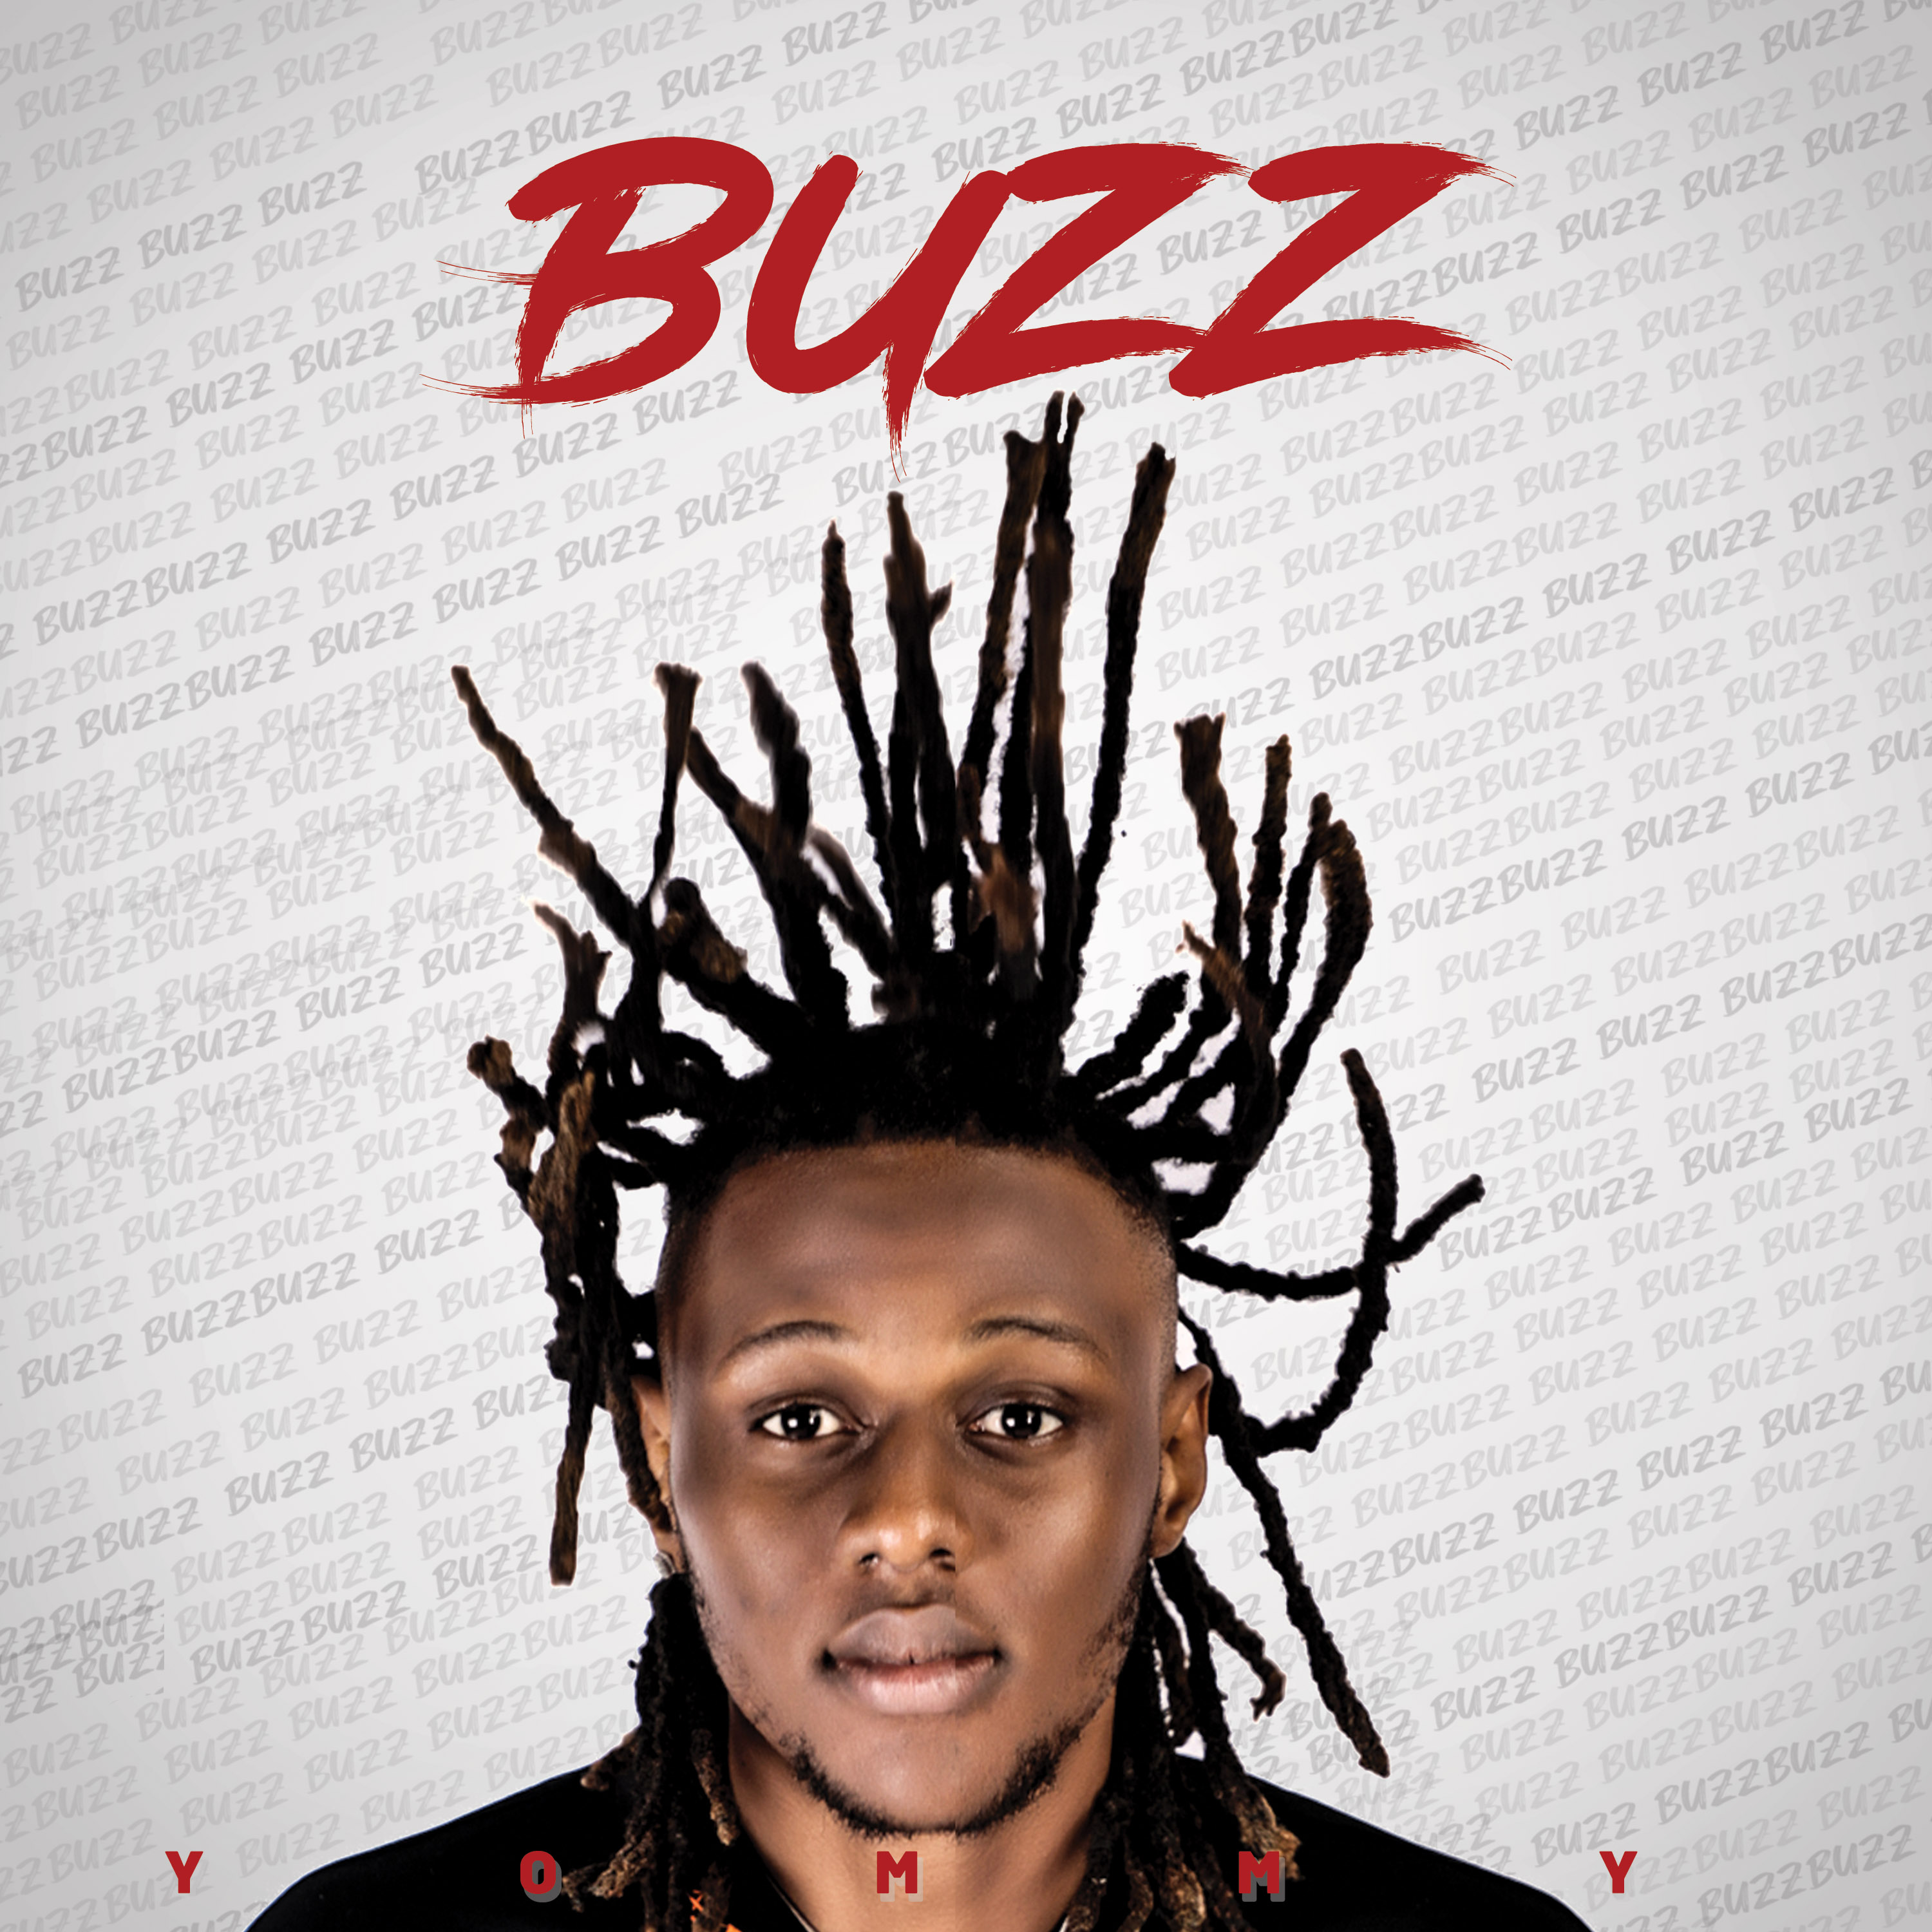 Yommy – Buzz (EP)